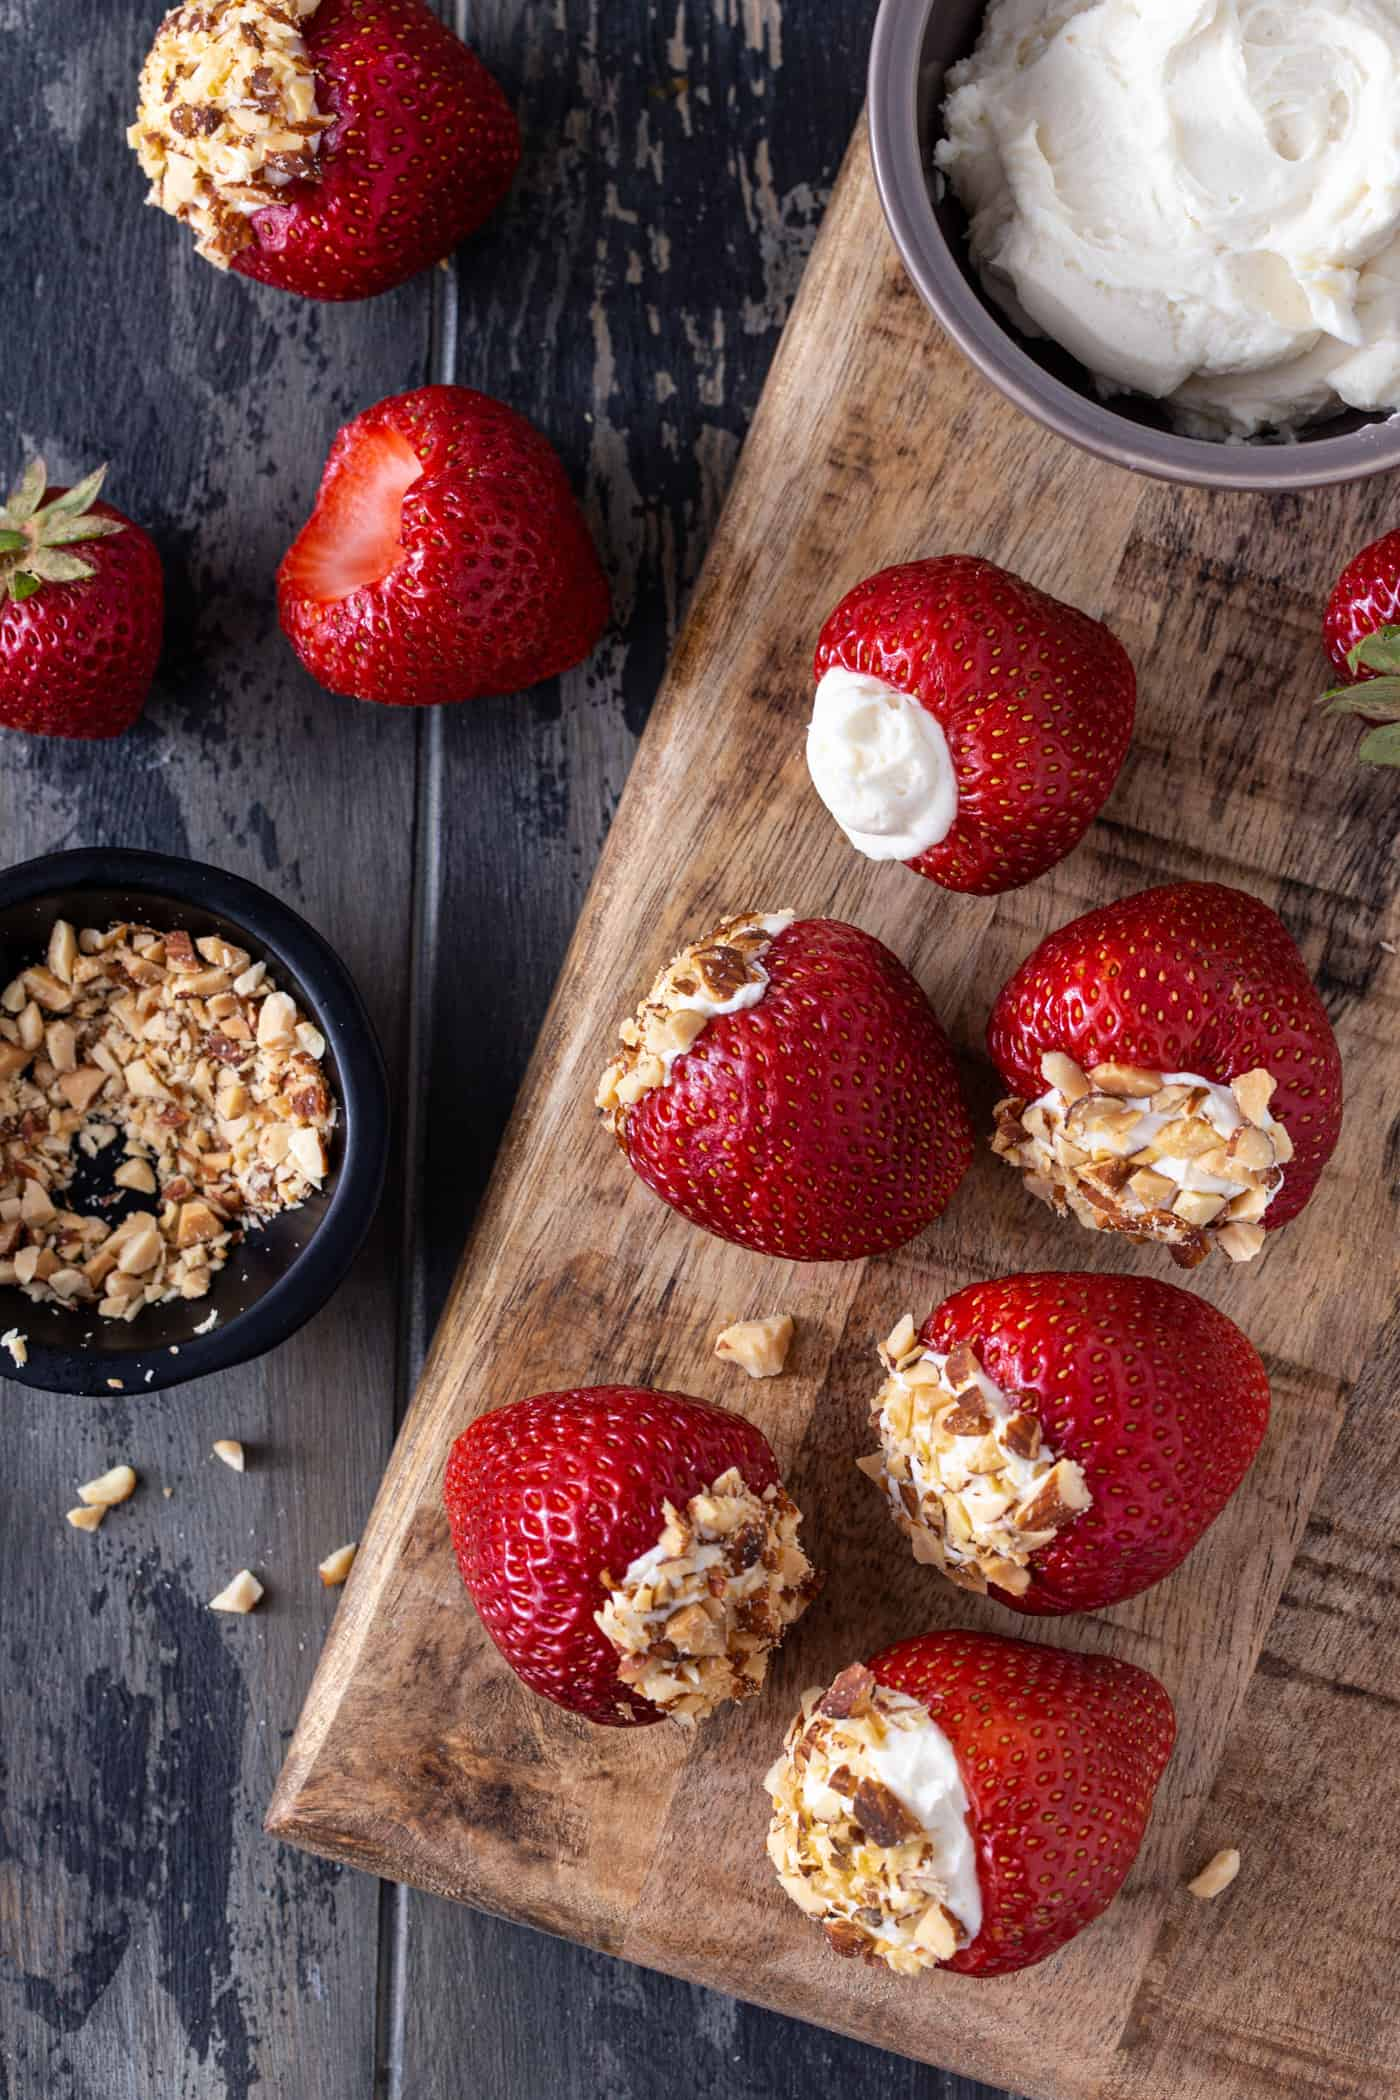 Strawberries on a wooden board stuffed with cheesecake filling and topped with crushed almonds